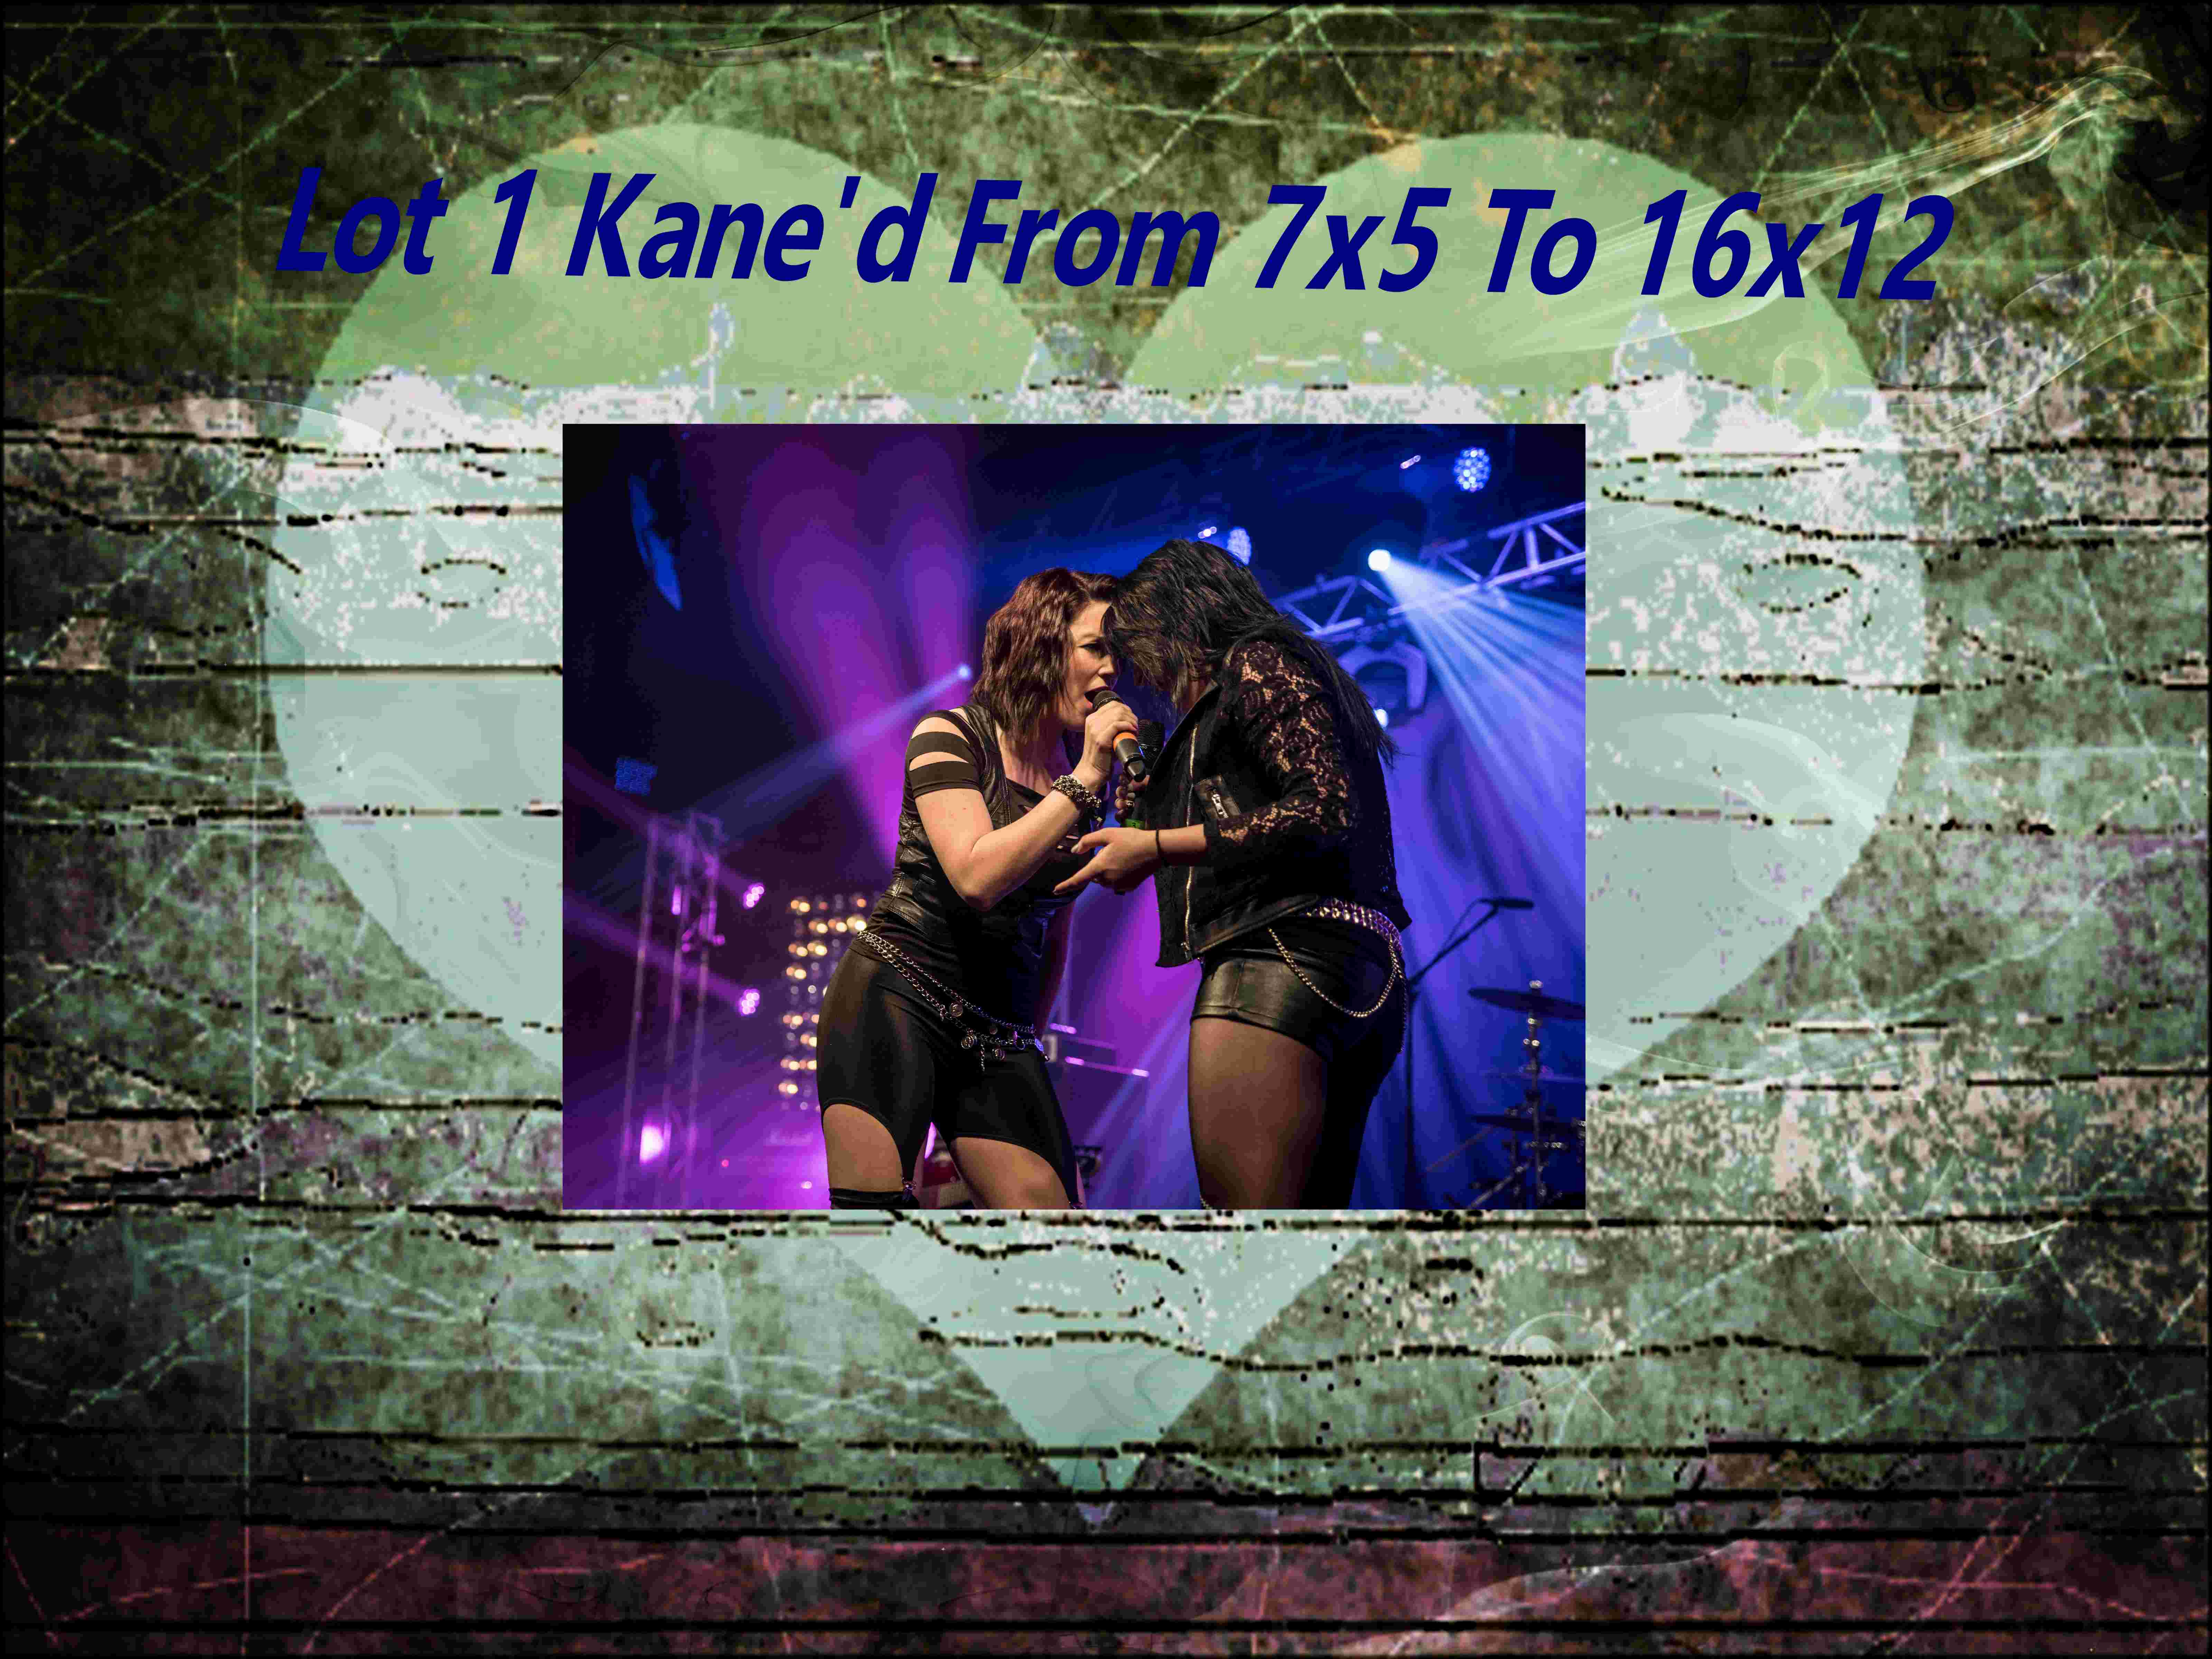 Set 3  Kane'd from 7X5 to 16 x 12